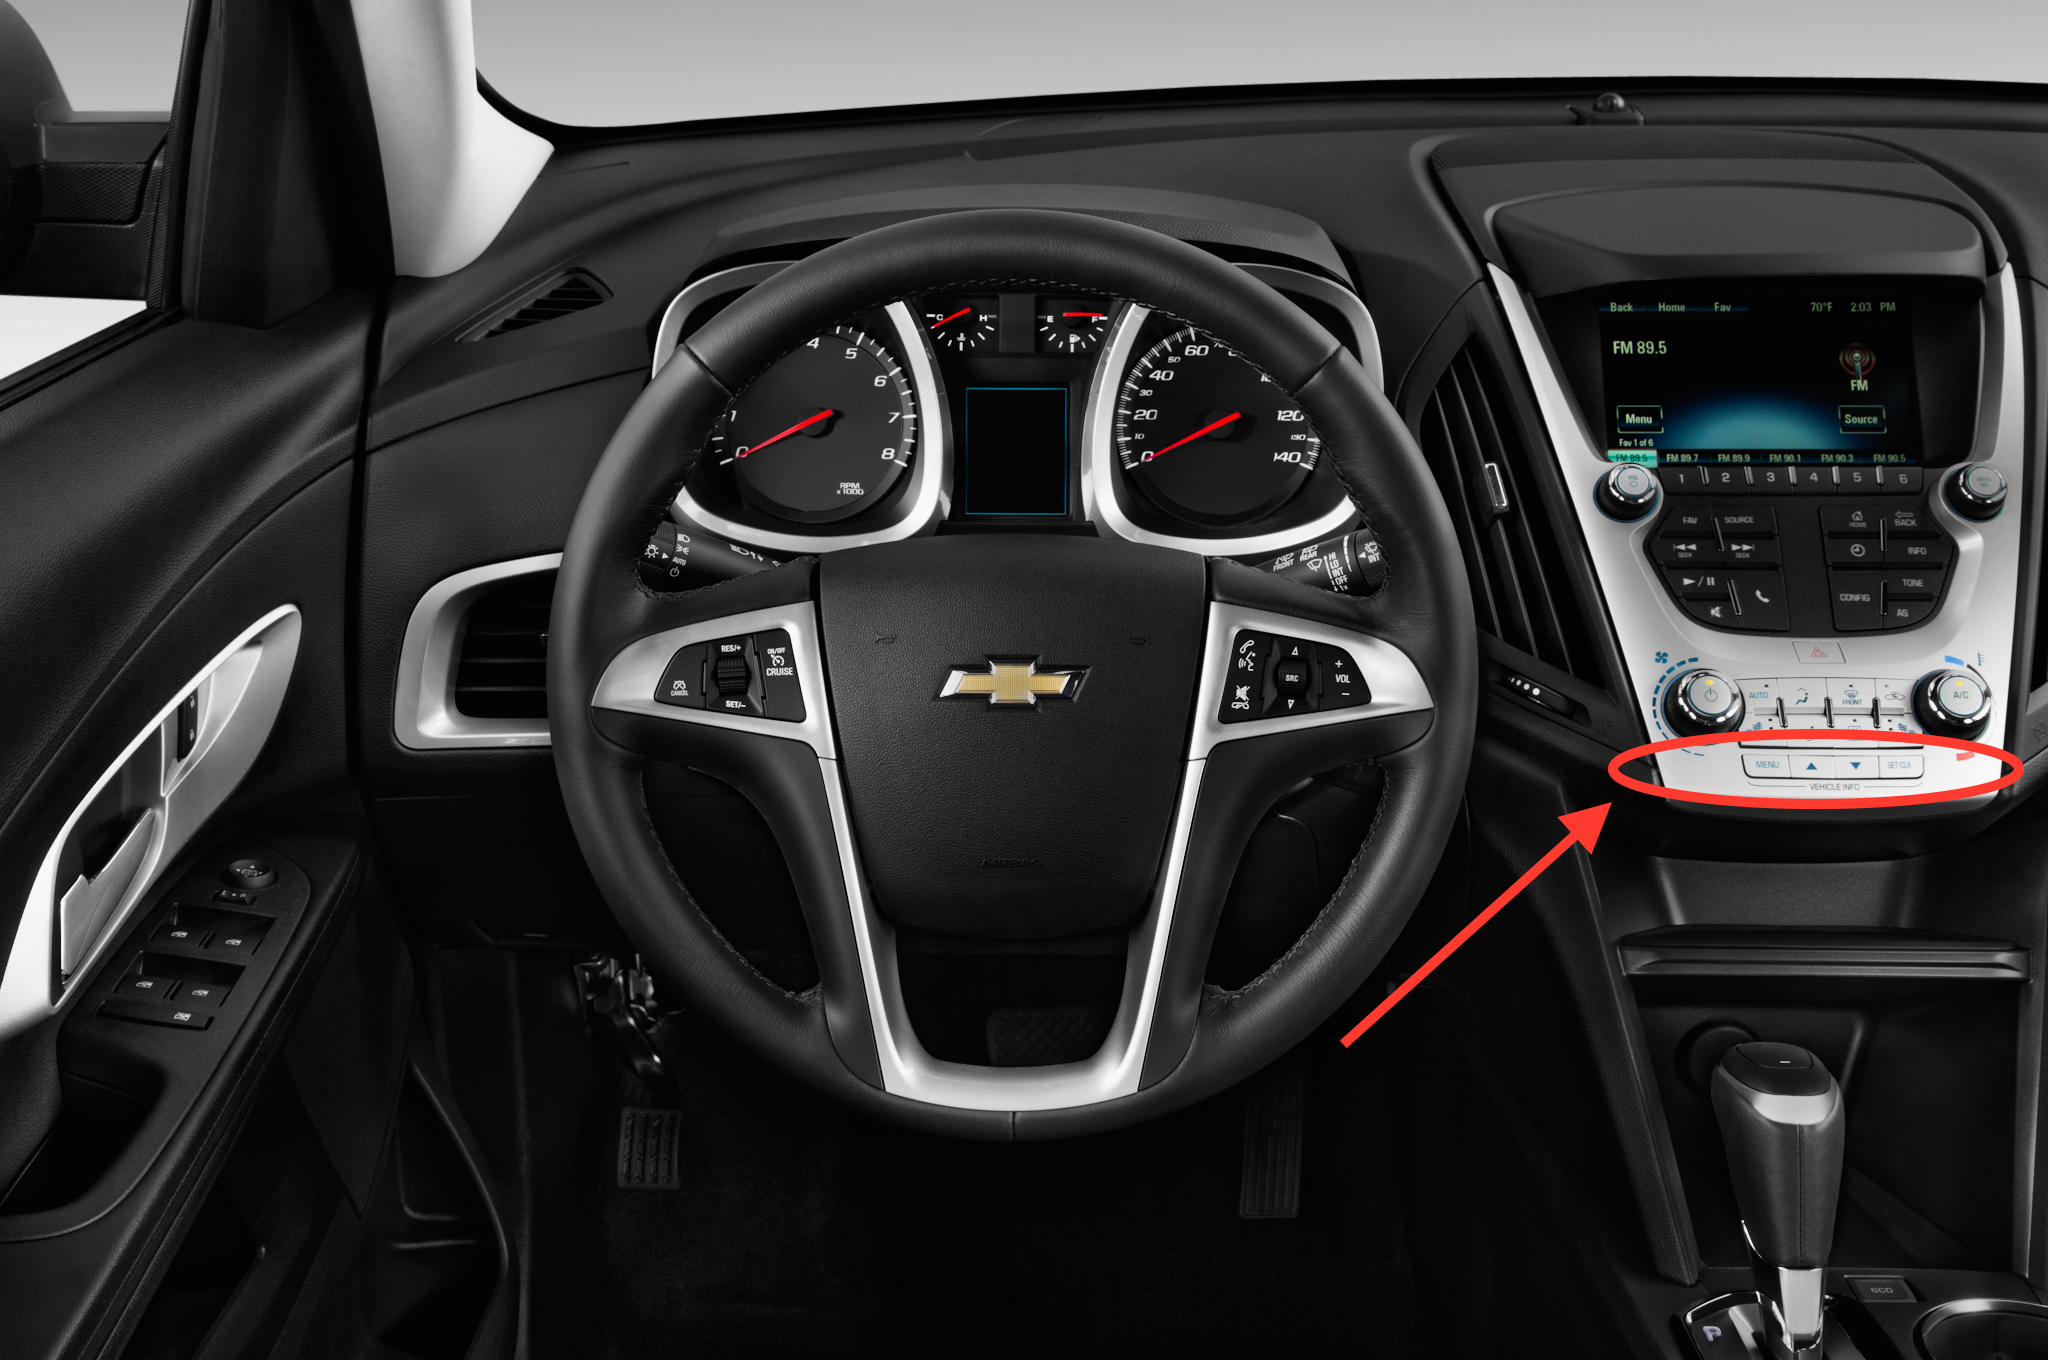 Oil Reset » Blog Archive » 2017 Chevrolet Equinox Interior